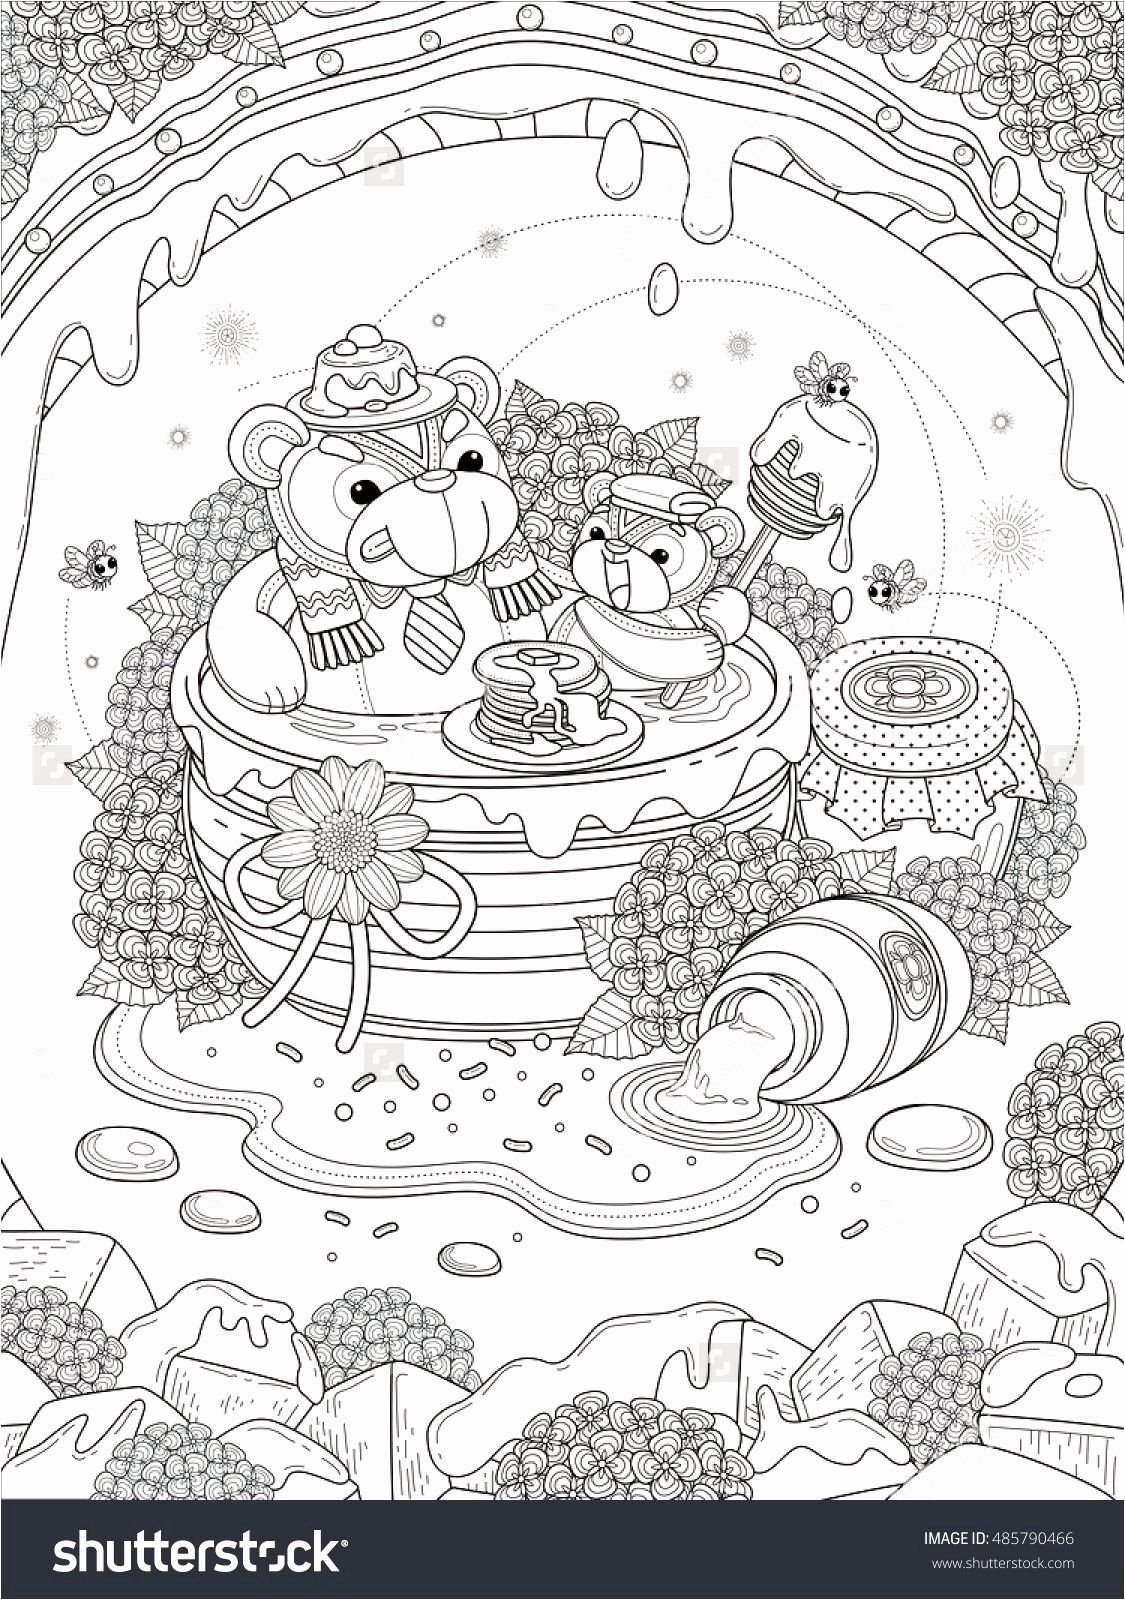 Printable Christmas Coloring Pages Crayola Lovely 24 Color